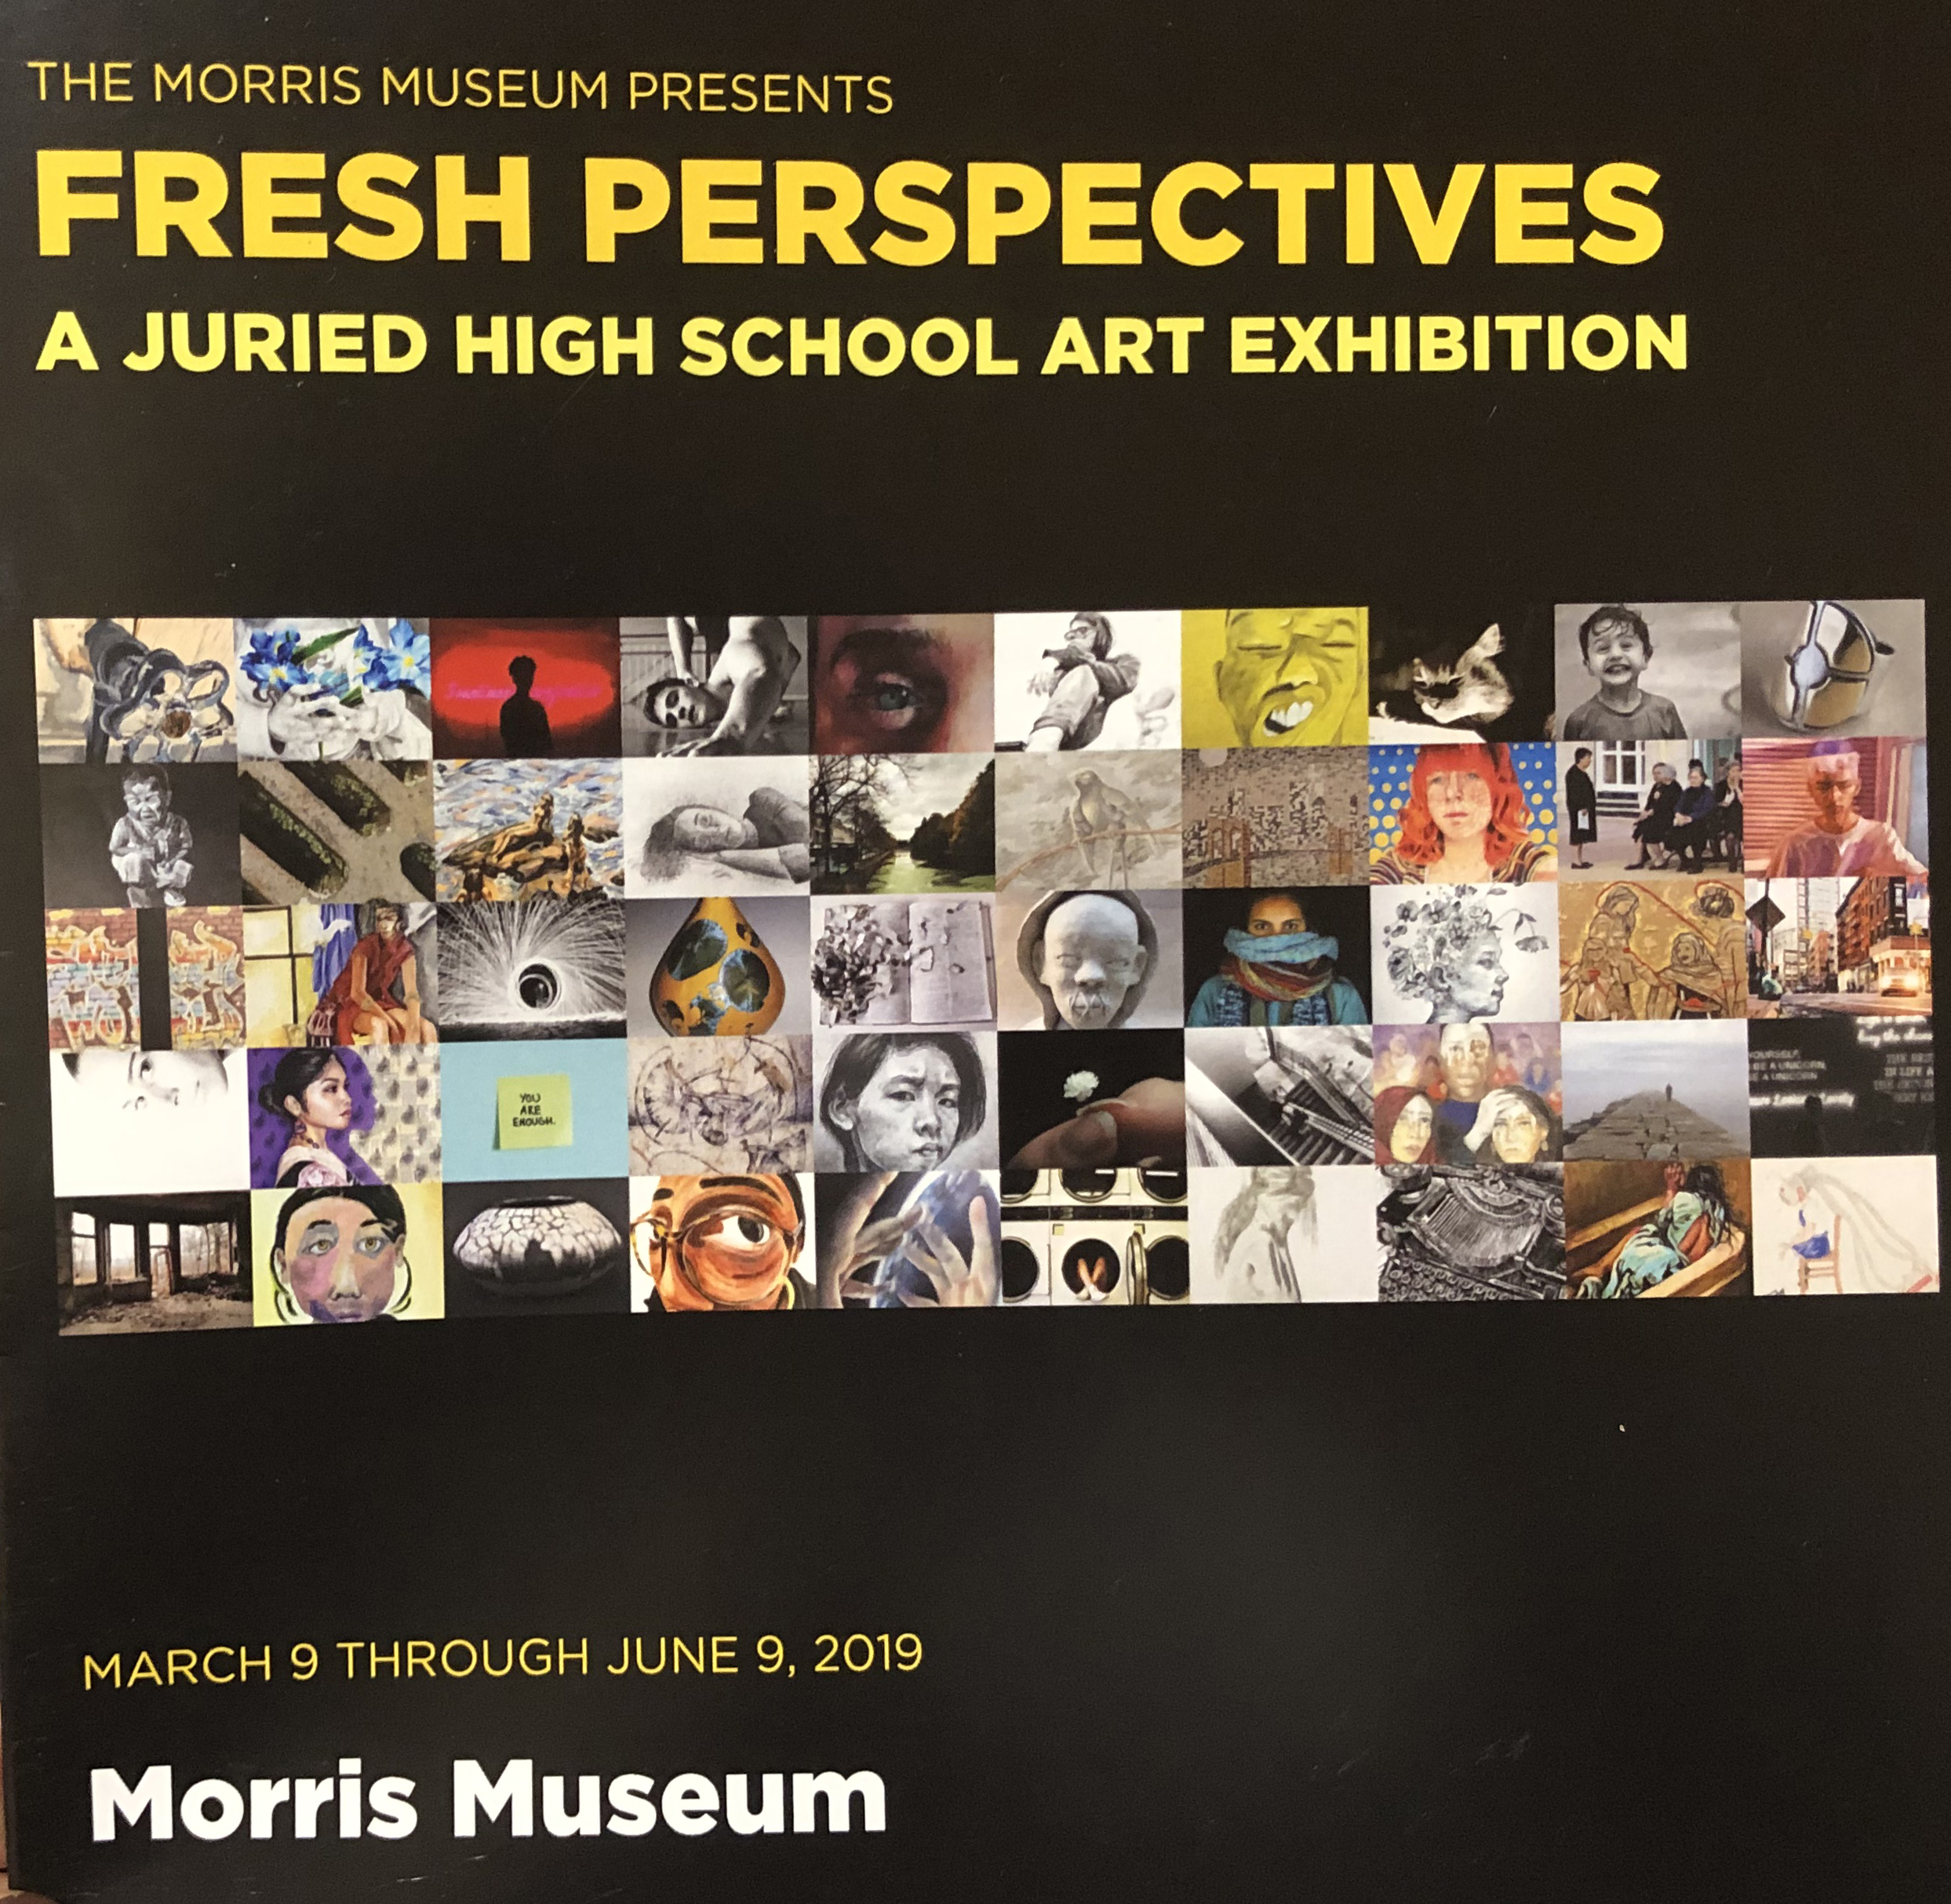 Congratulations Ashley J. and Donna-Faith F. for representing BASCS at The Morris Museum for Fresh Perspectives